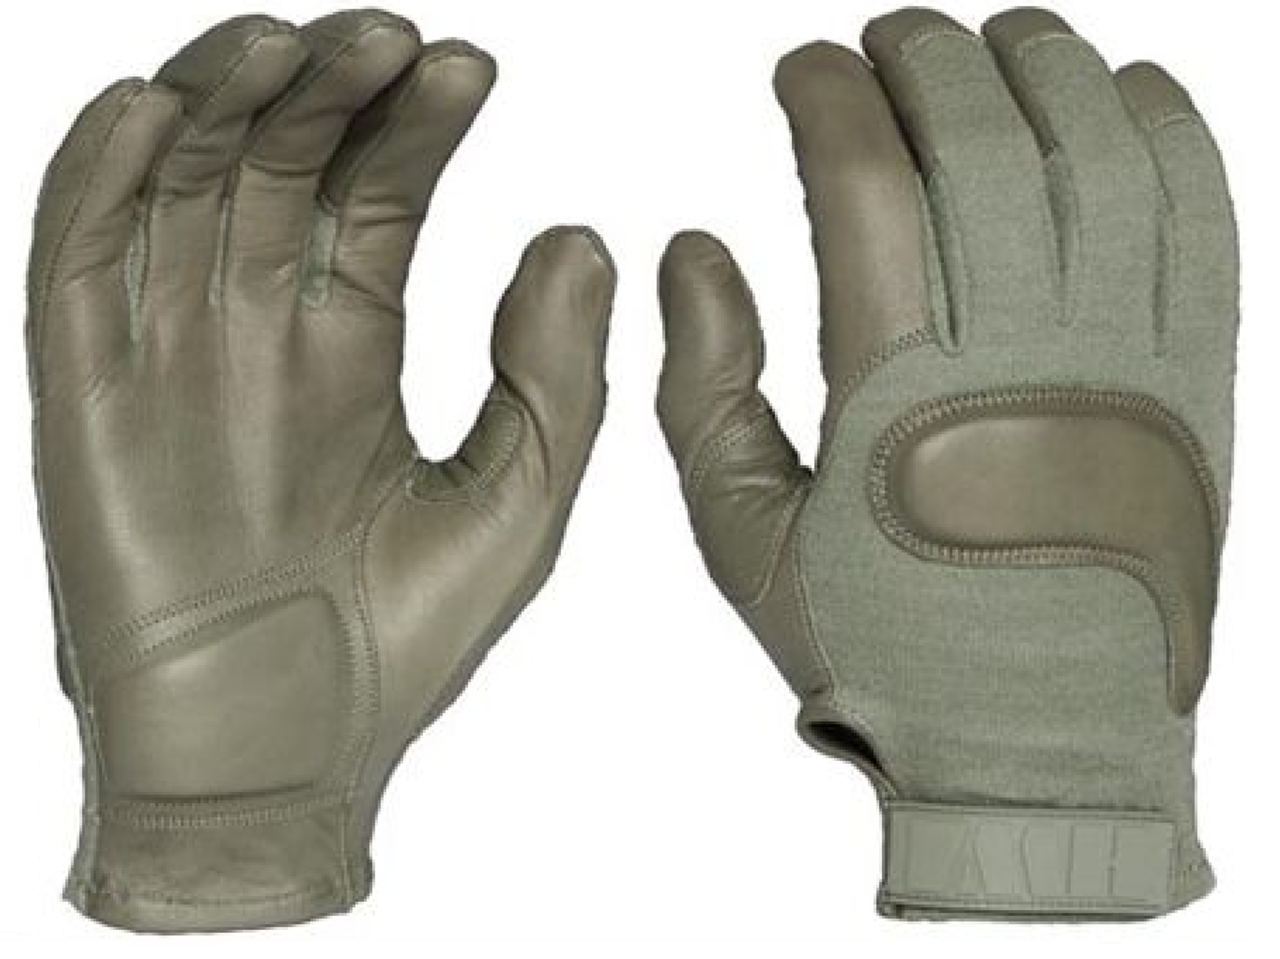 Goatsking leather kevlar army combat glove